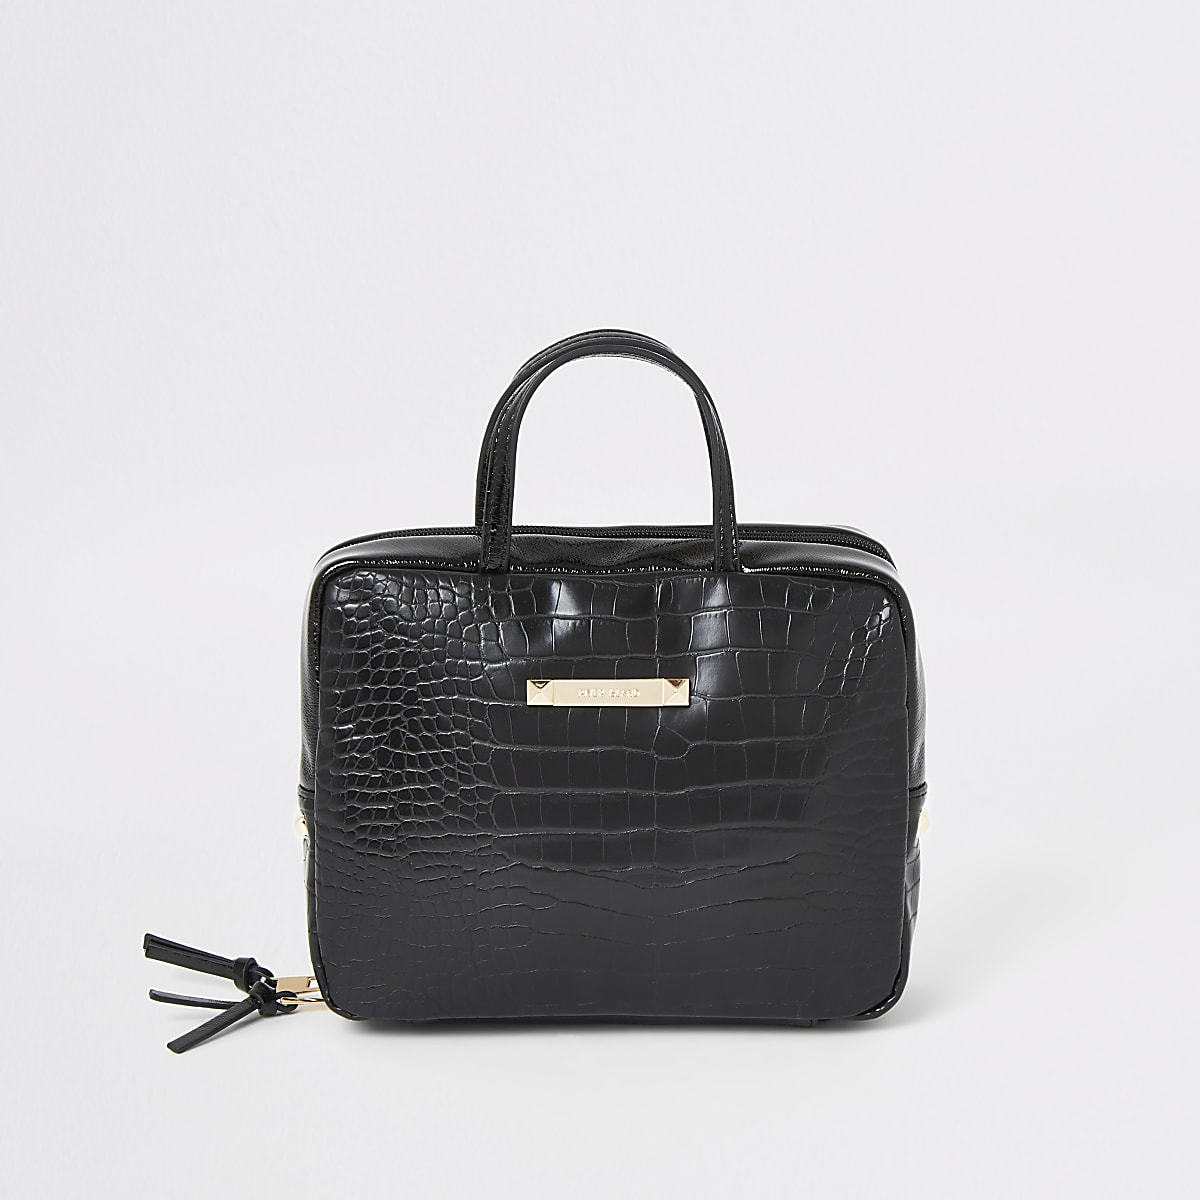 Black faux leather croc embossed vanity bag